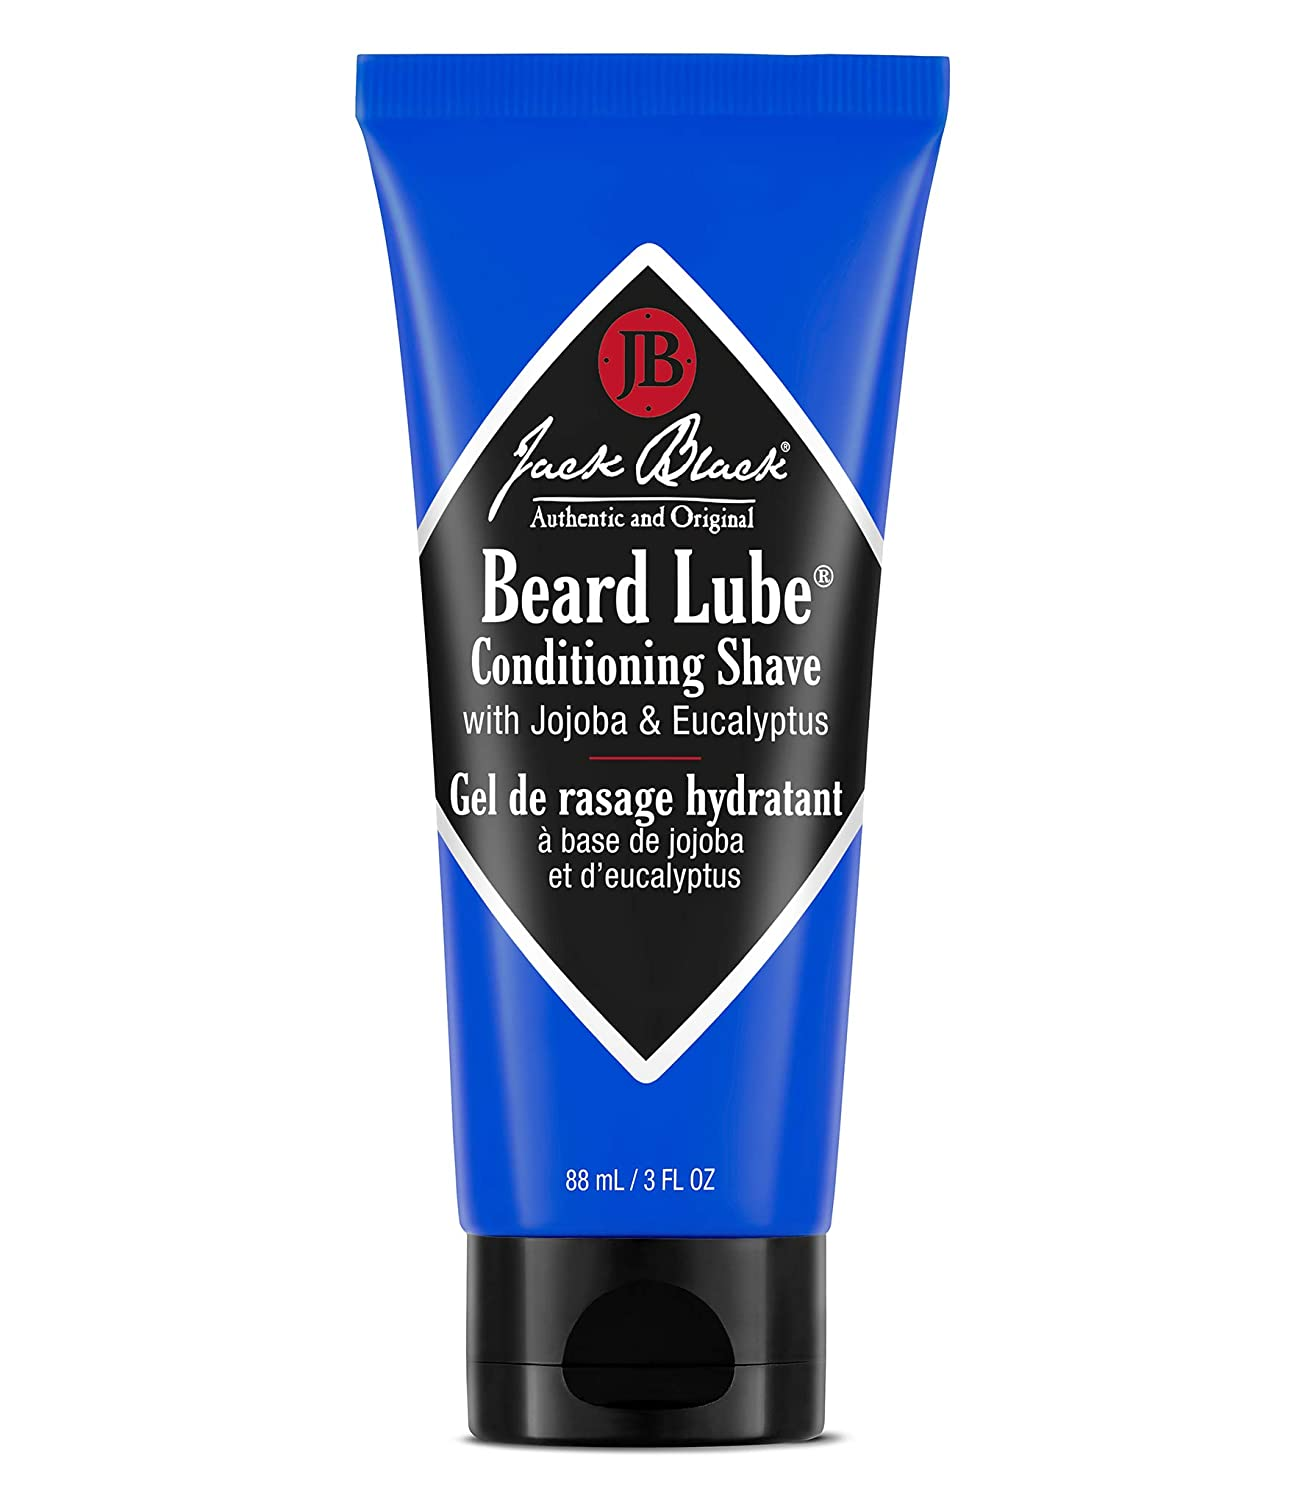 Jack Black beard lube conditioning shave set